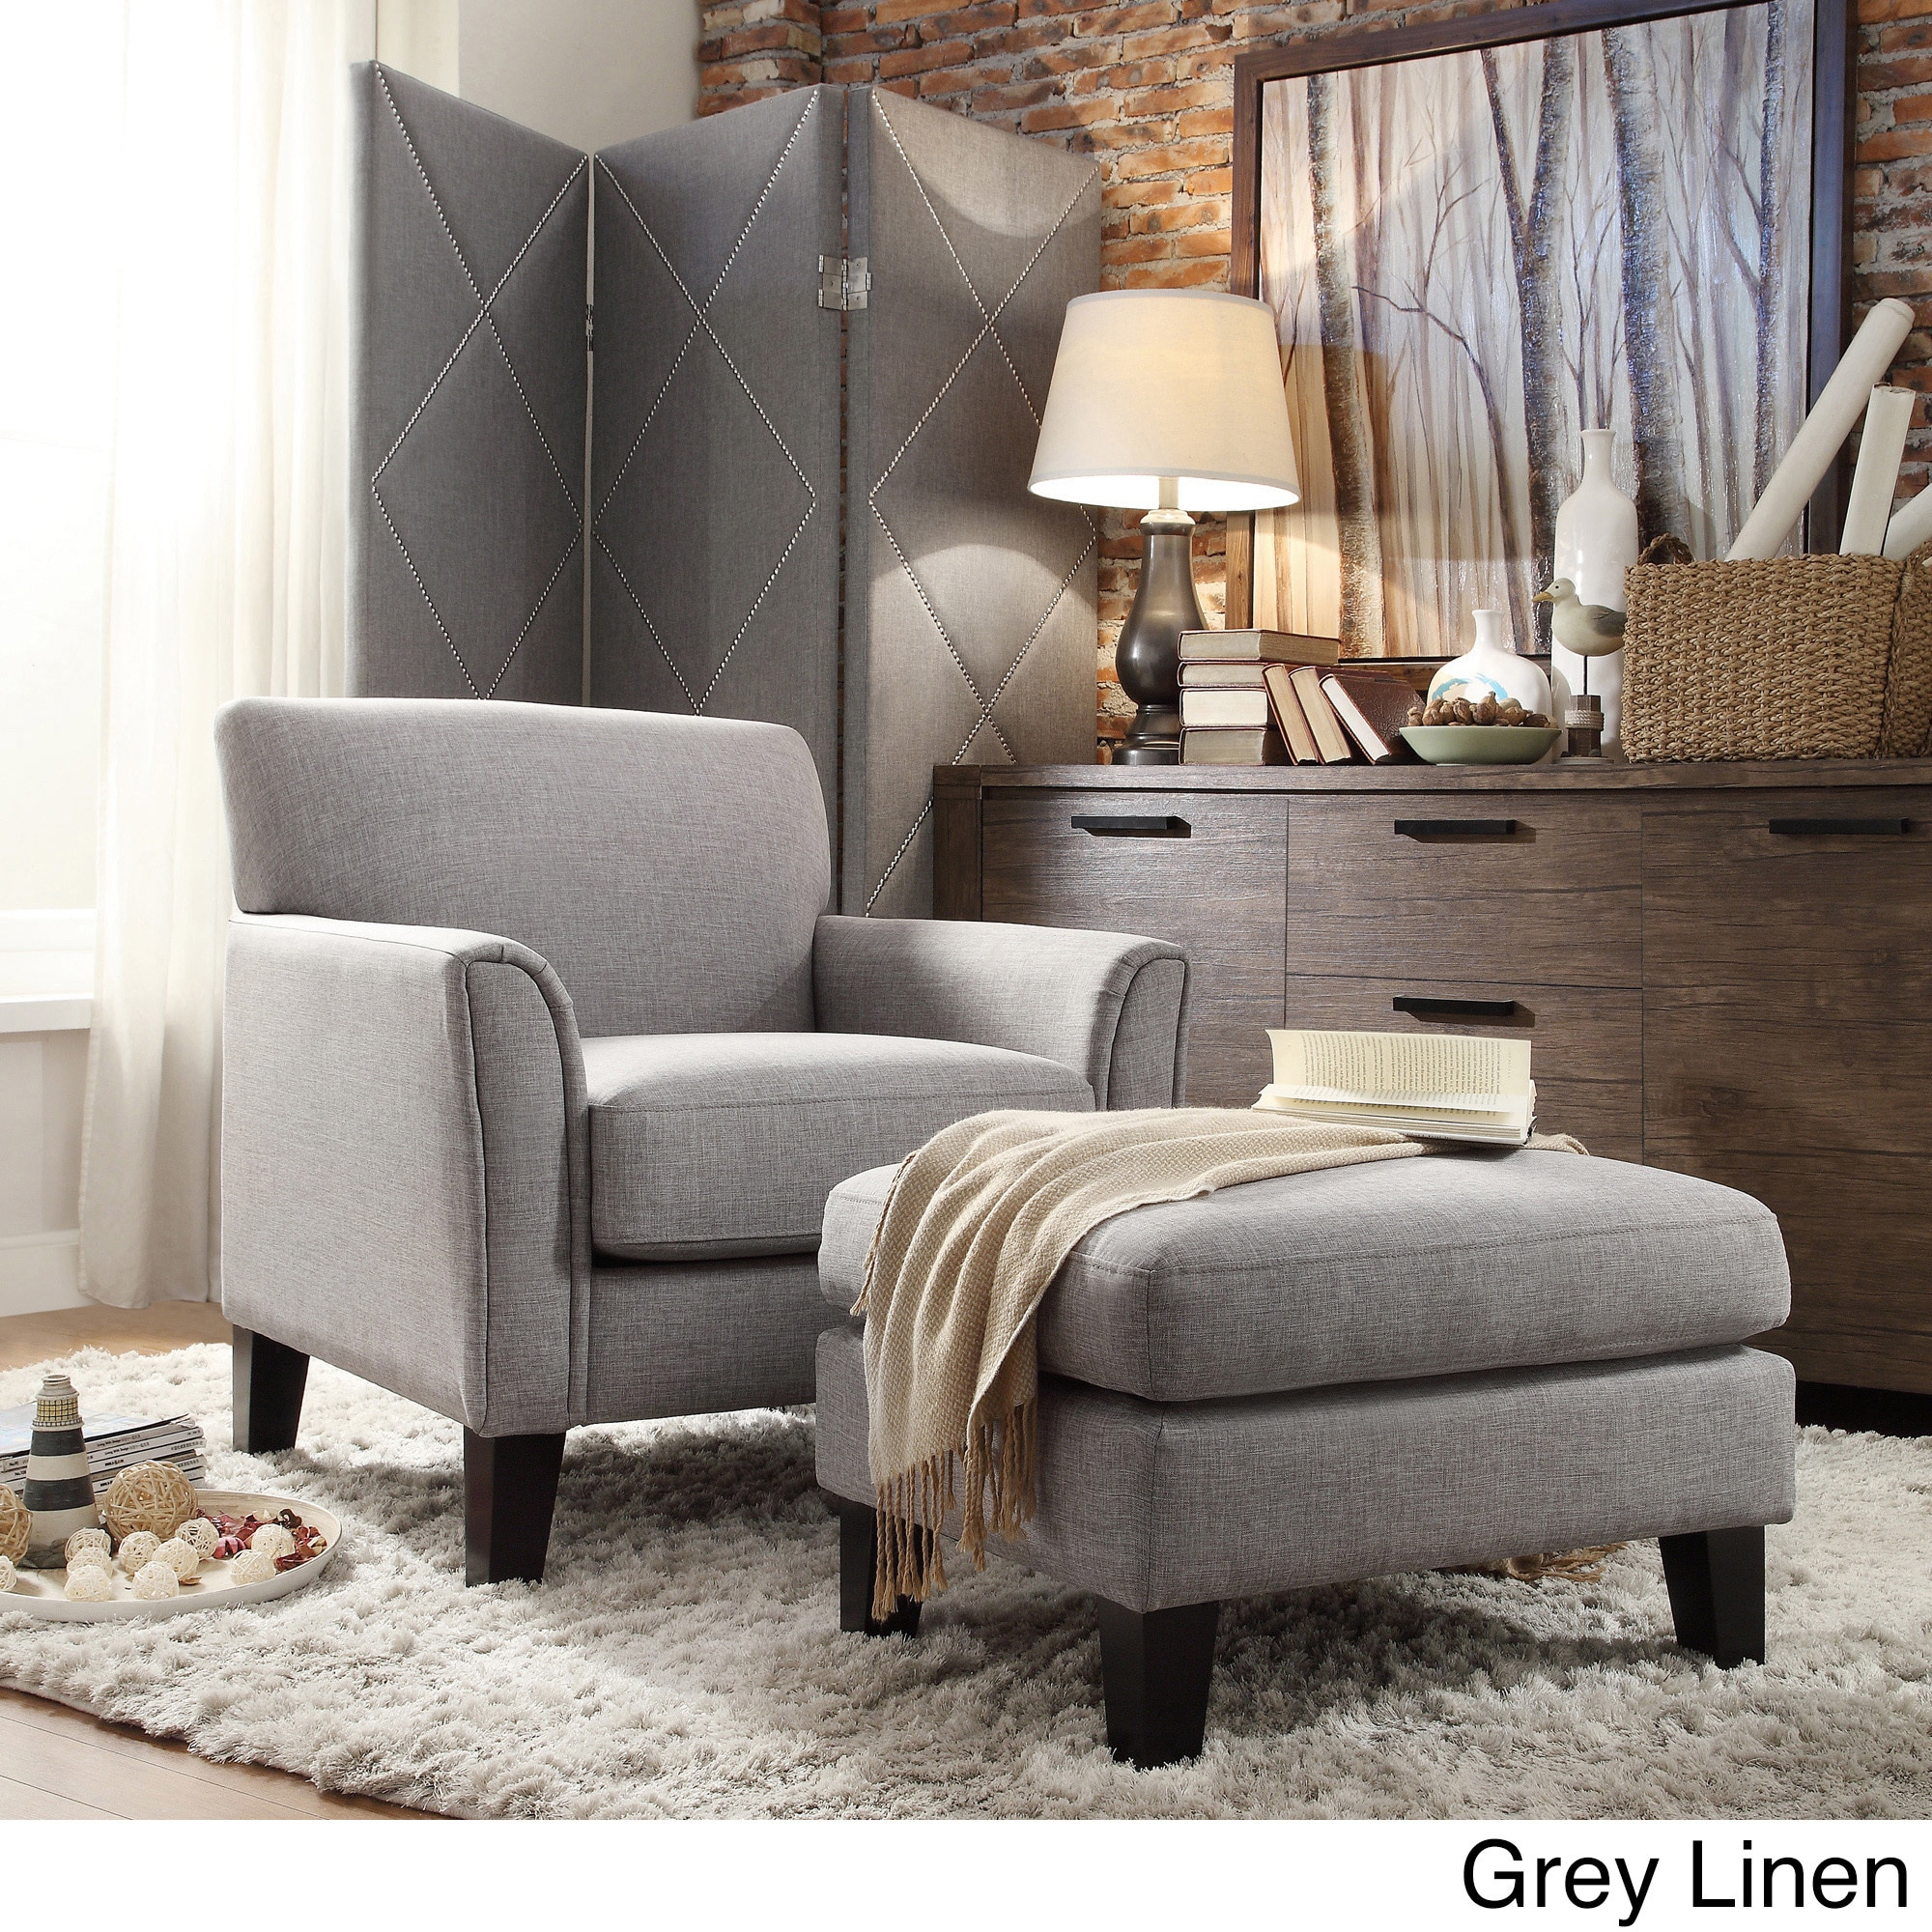 Delightful Uptown Modern Accent Chair And Ottoman By INSPIRE Q Classic